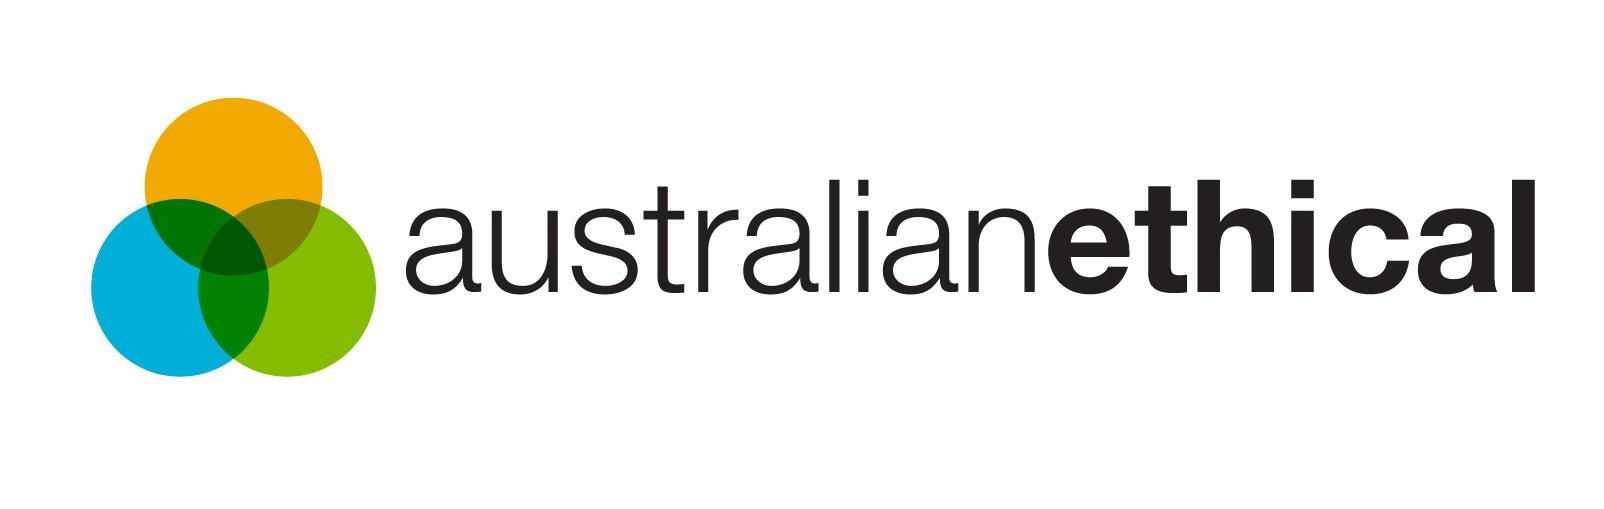 Australian Ethical Sustainable Managed Funds